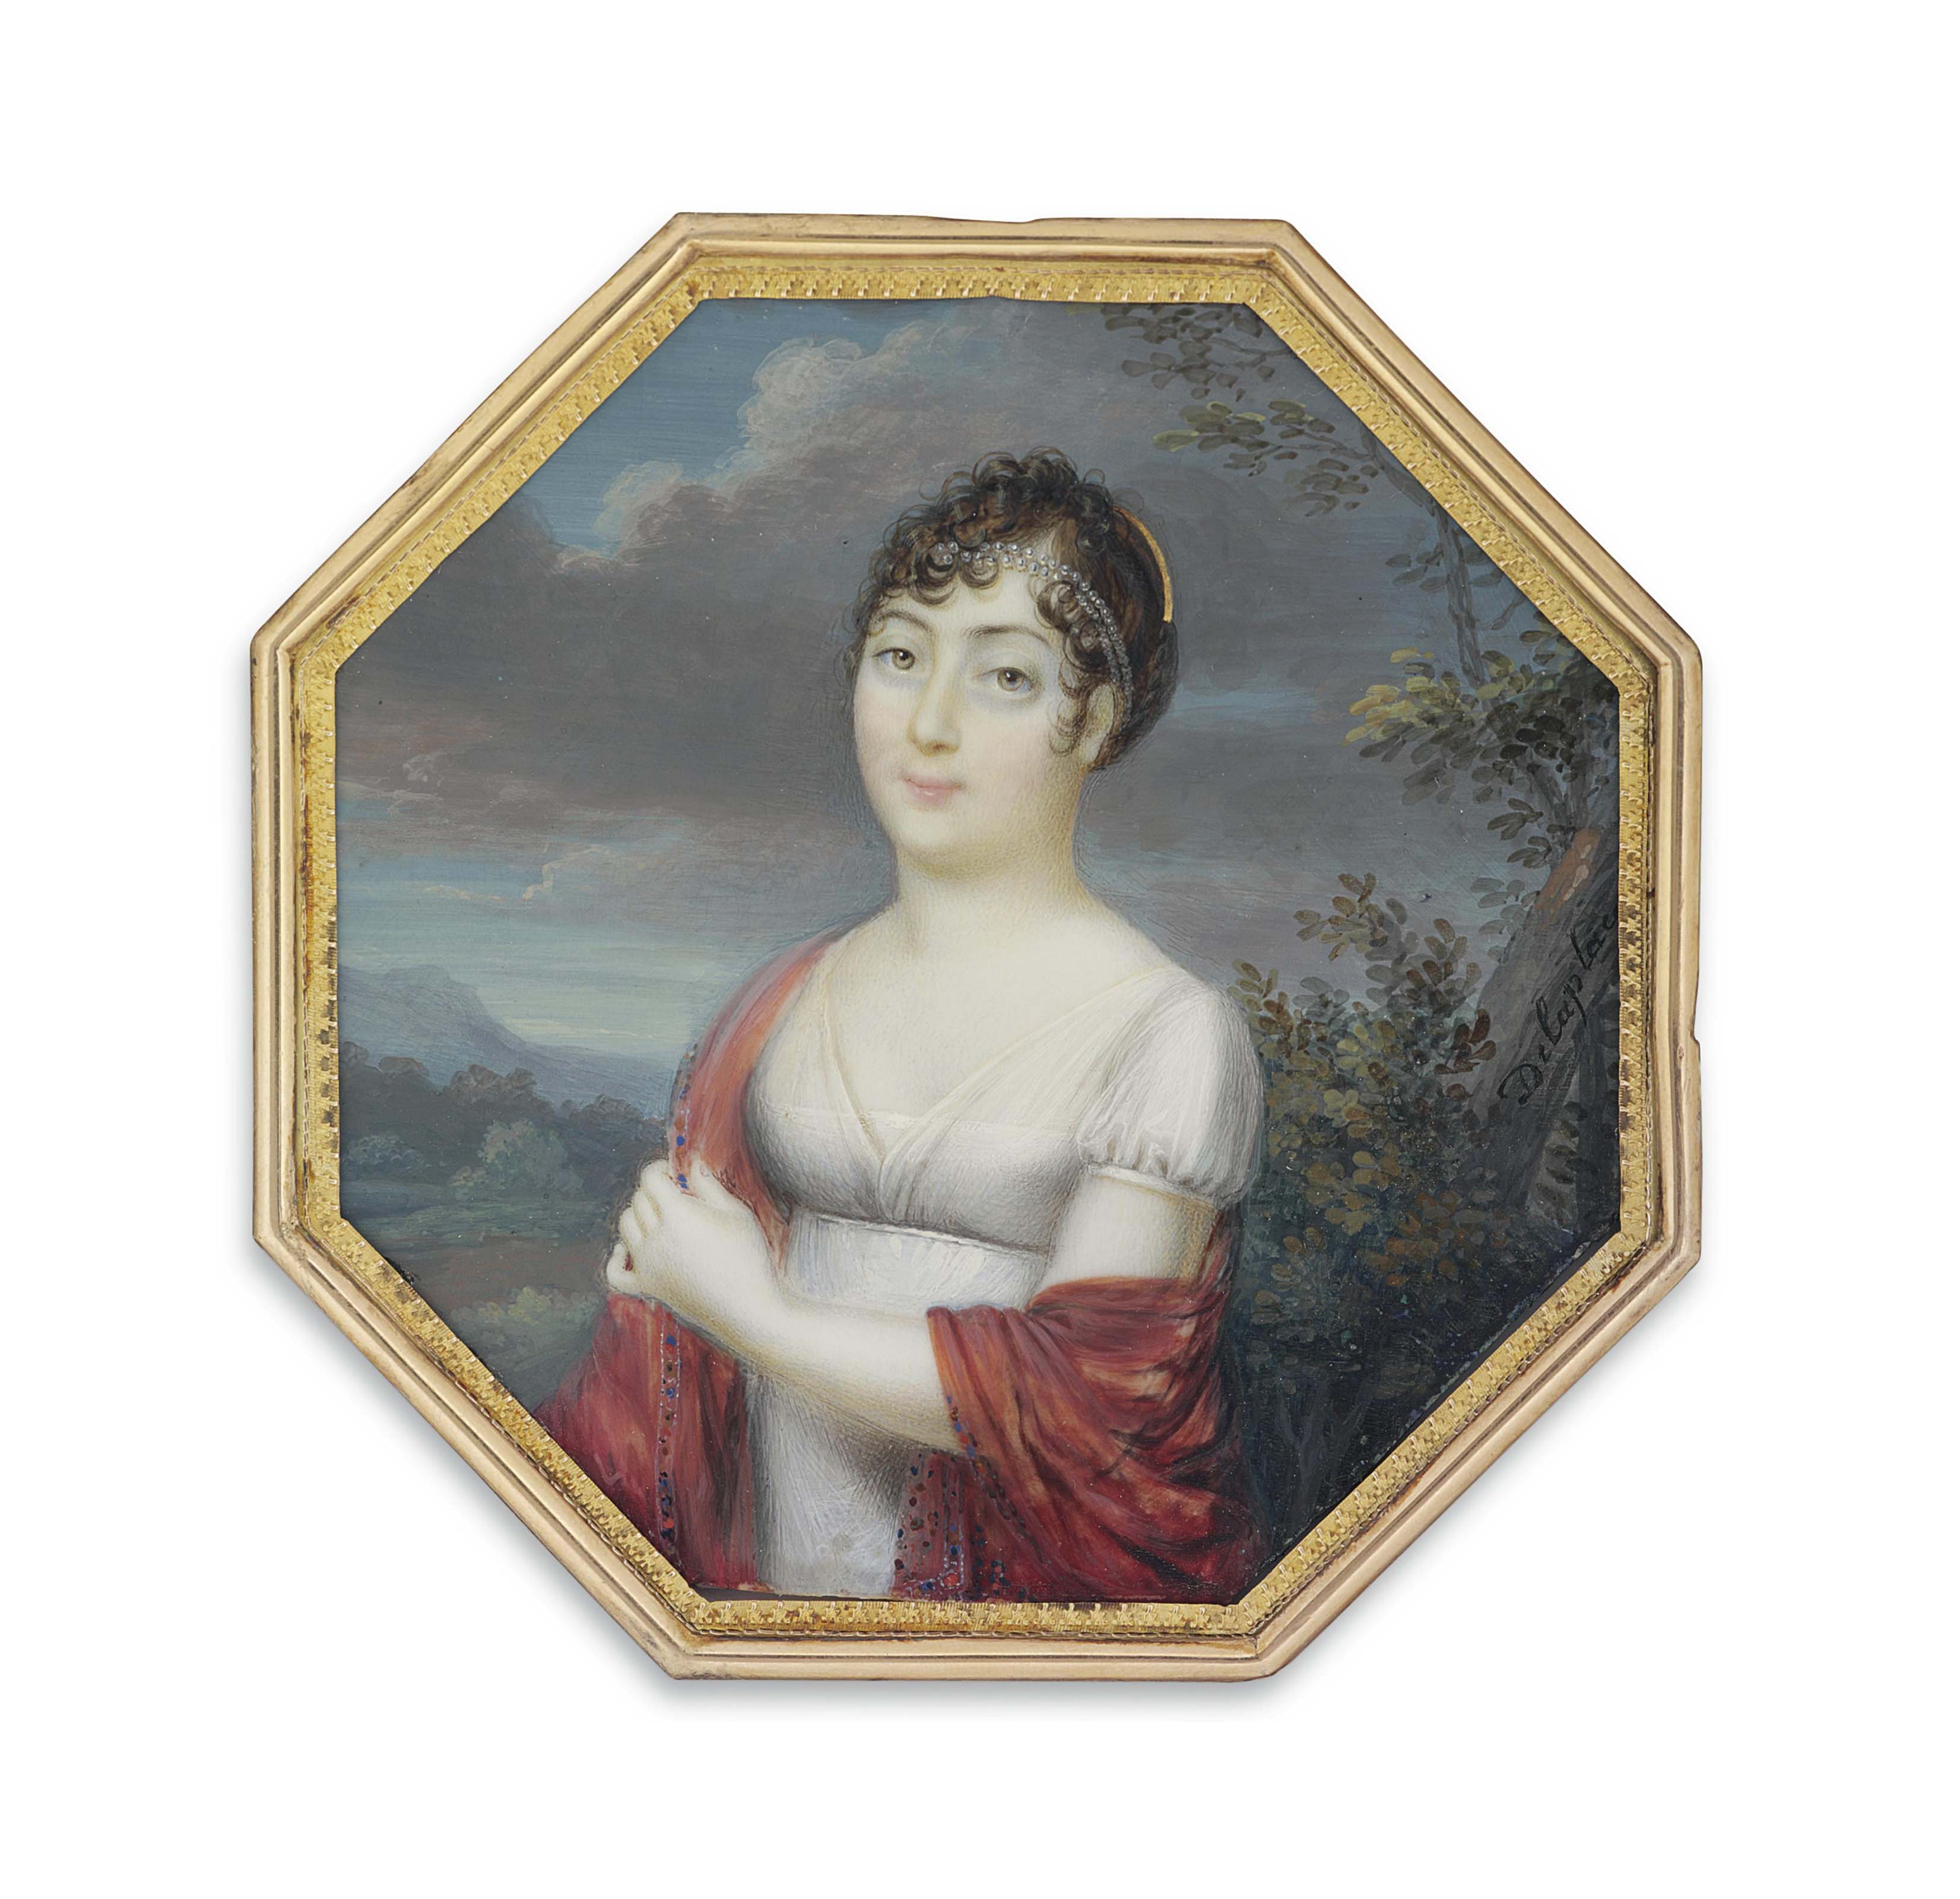 JACQUES DELAPLACE (FRENCH, 1767 - C. 1831)